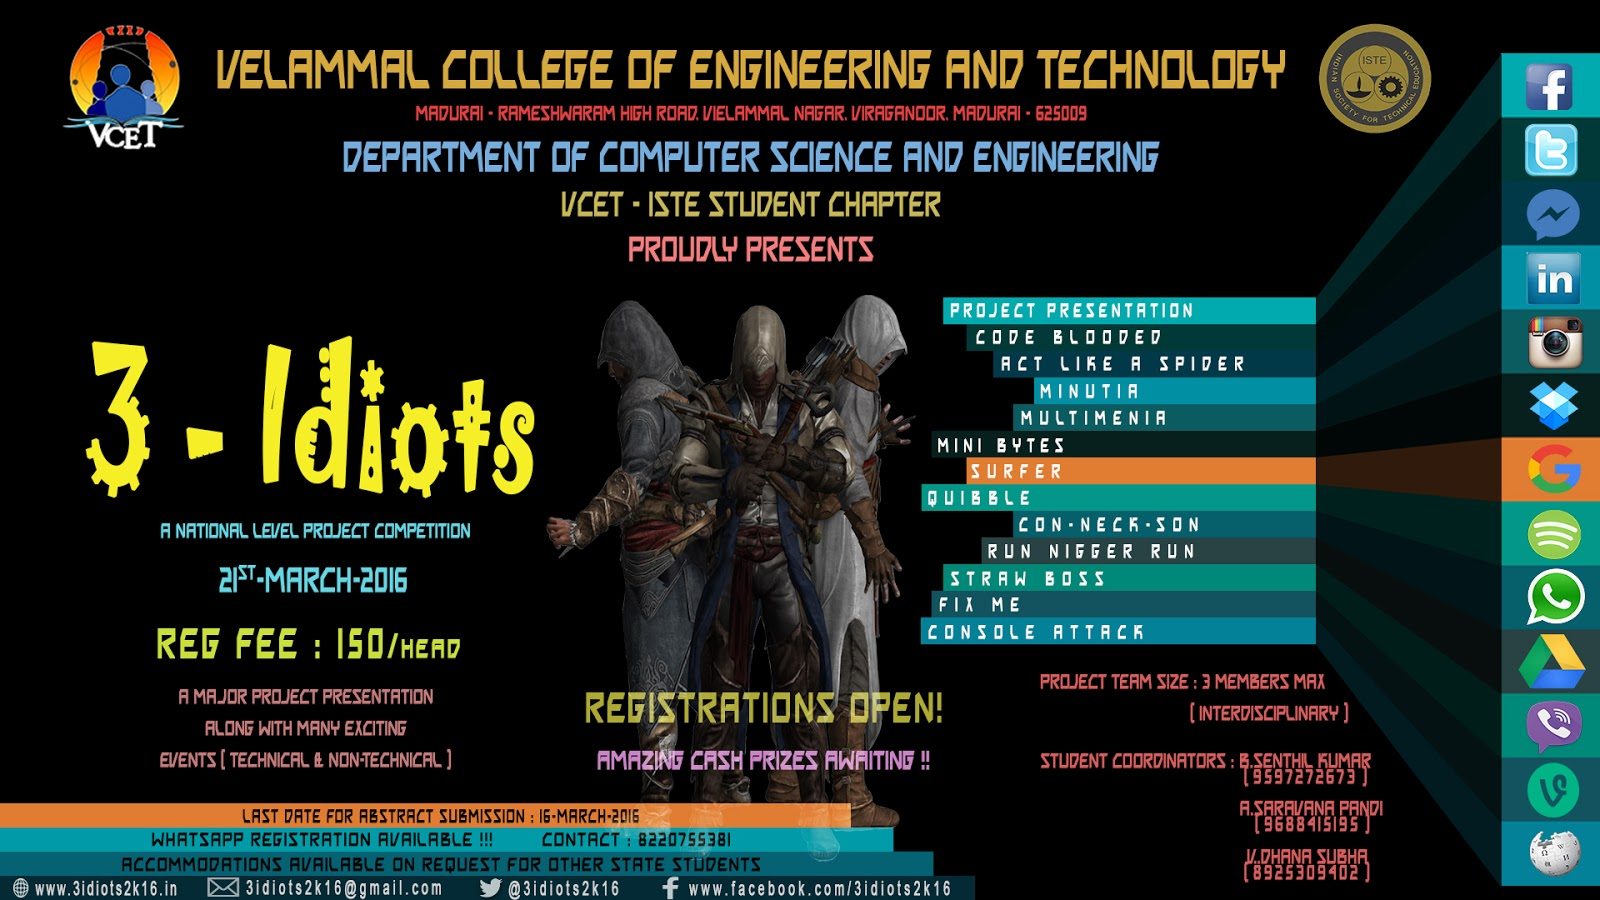 3IDIOTS Symposium Invitation at VCETMadurai